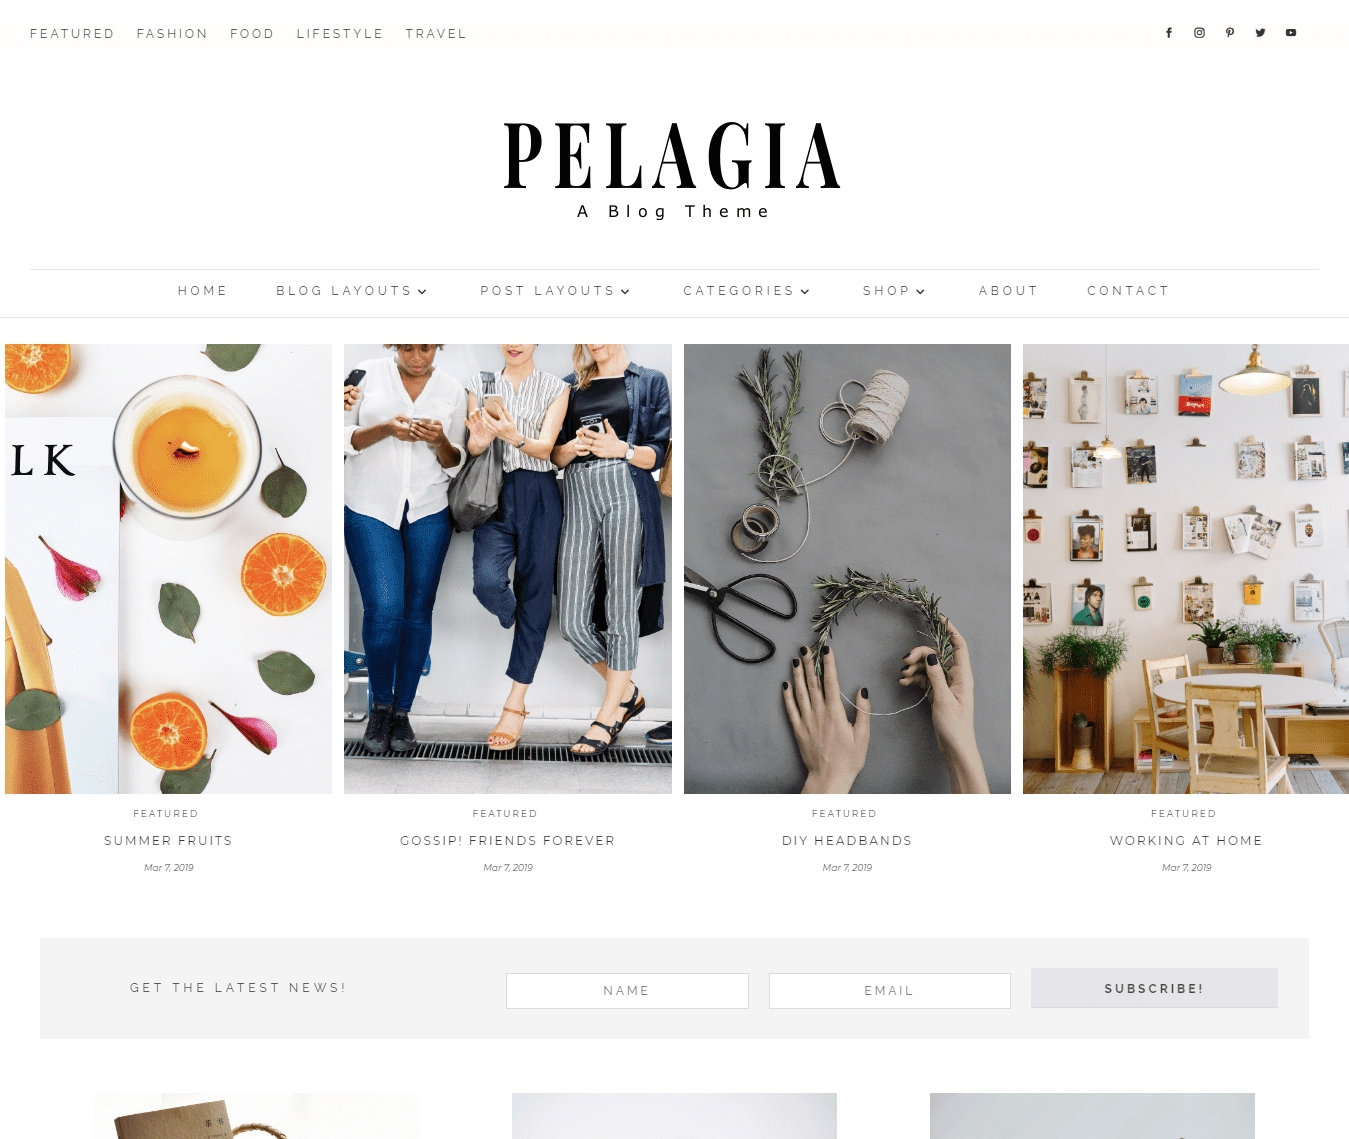 Pelagia, a minimalist, masonry blog theme for Divi.